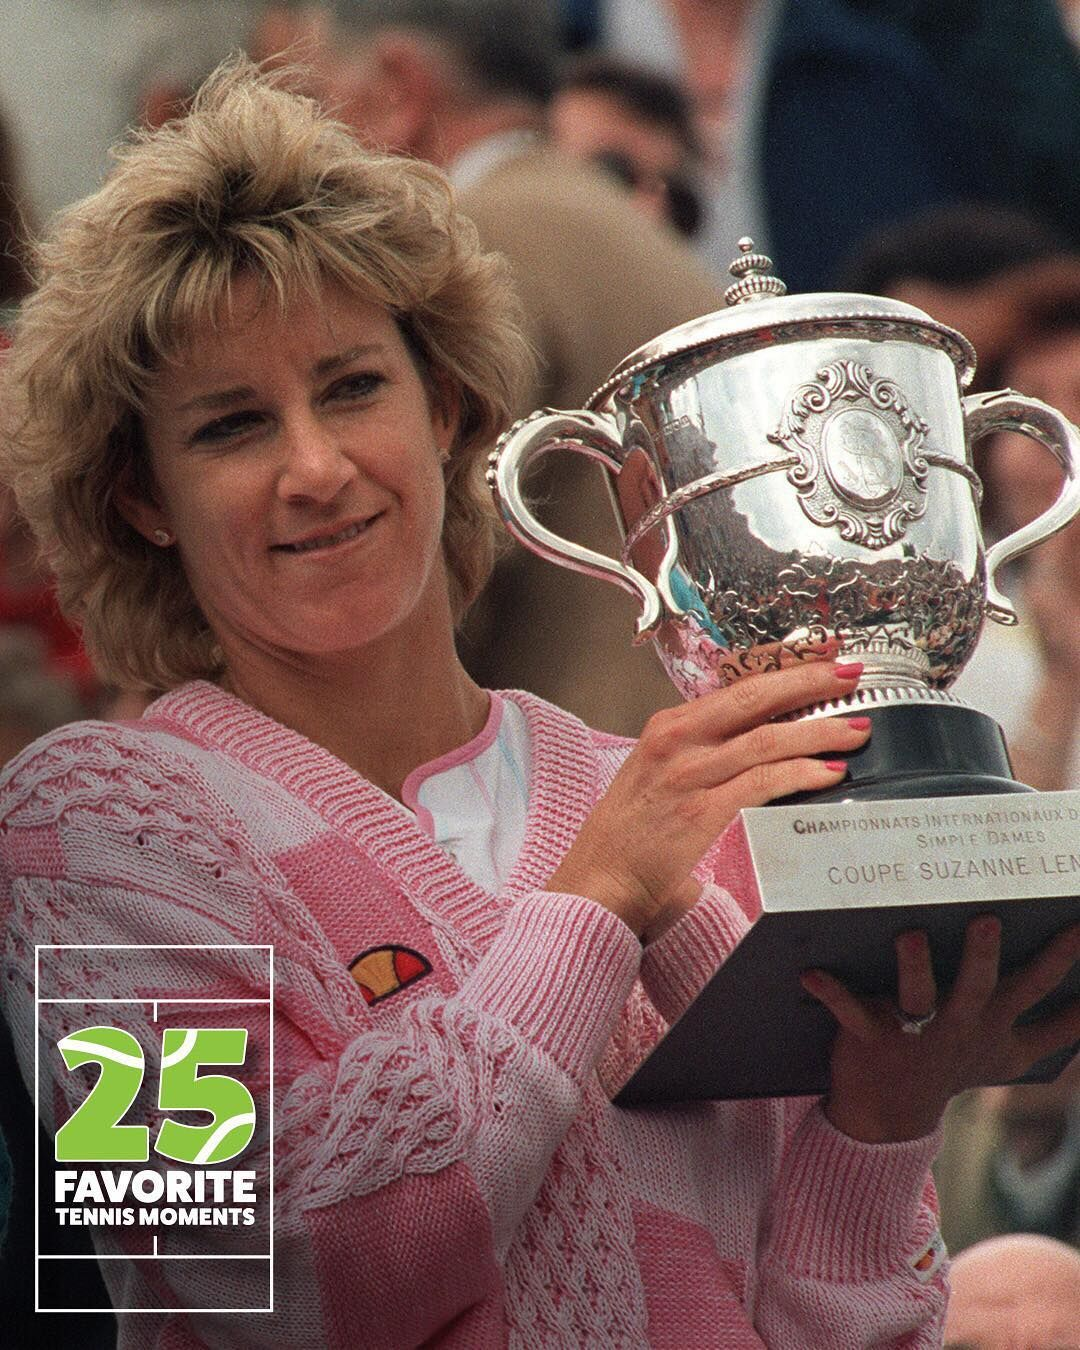 Chris Evert 18 Grand Slam singles titles